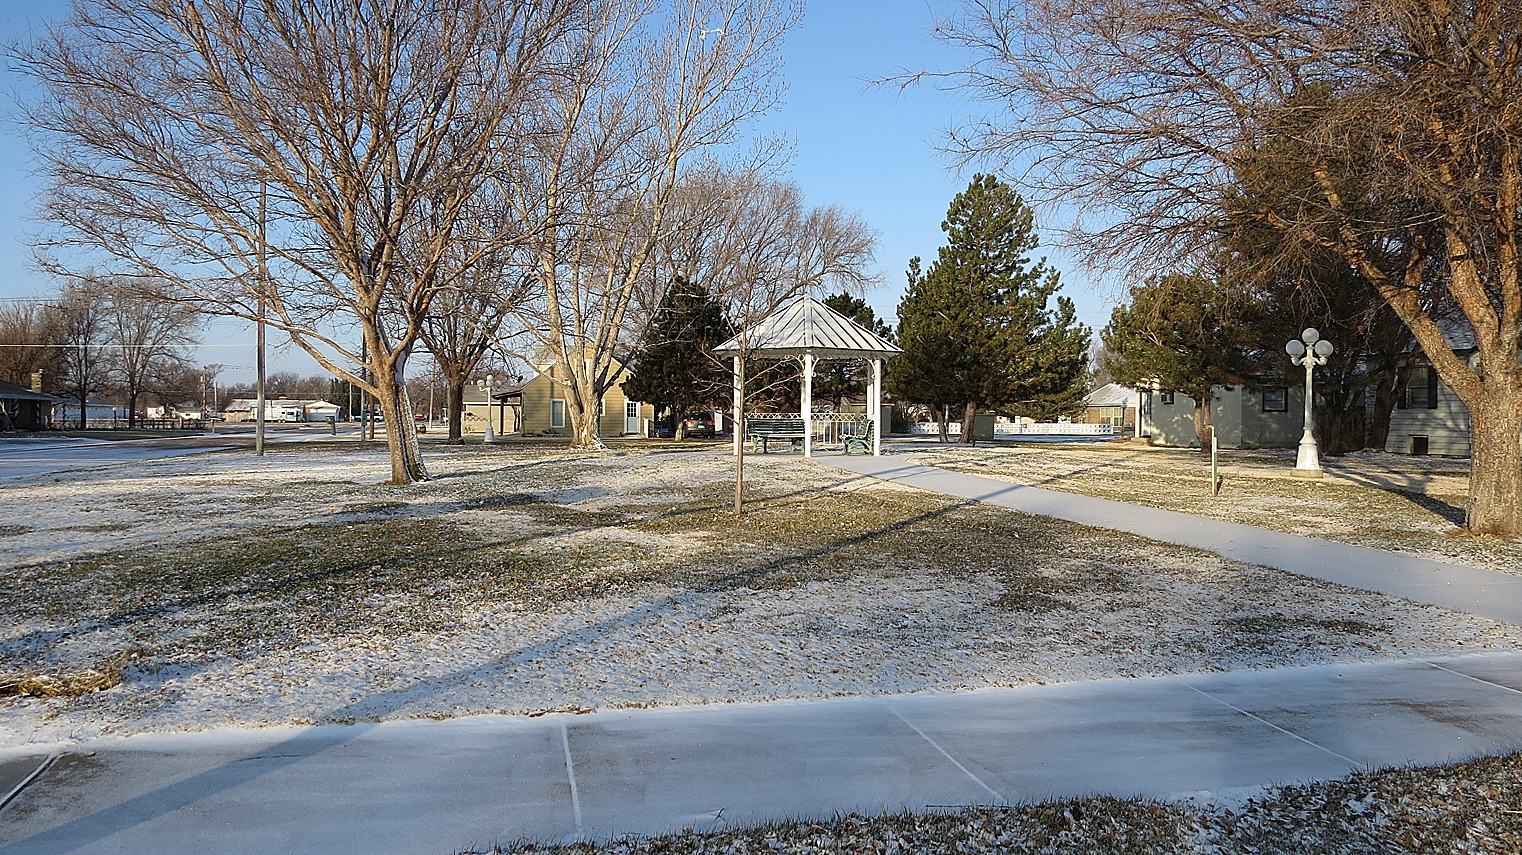 The snow looks like powdered sugar as Hugoton receives a  dusting last Friday. Any moisture received - frozen or not -  is much appreciated! Parsons Park is beautiful whether in winter or summer.